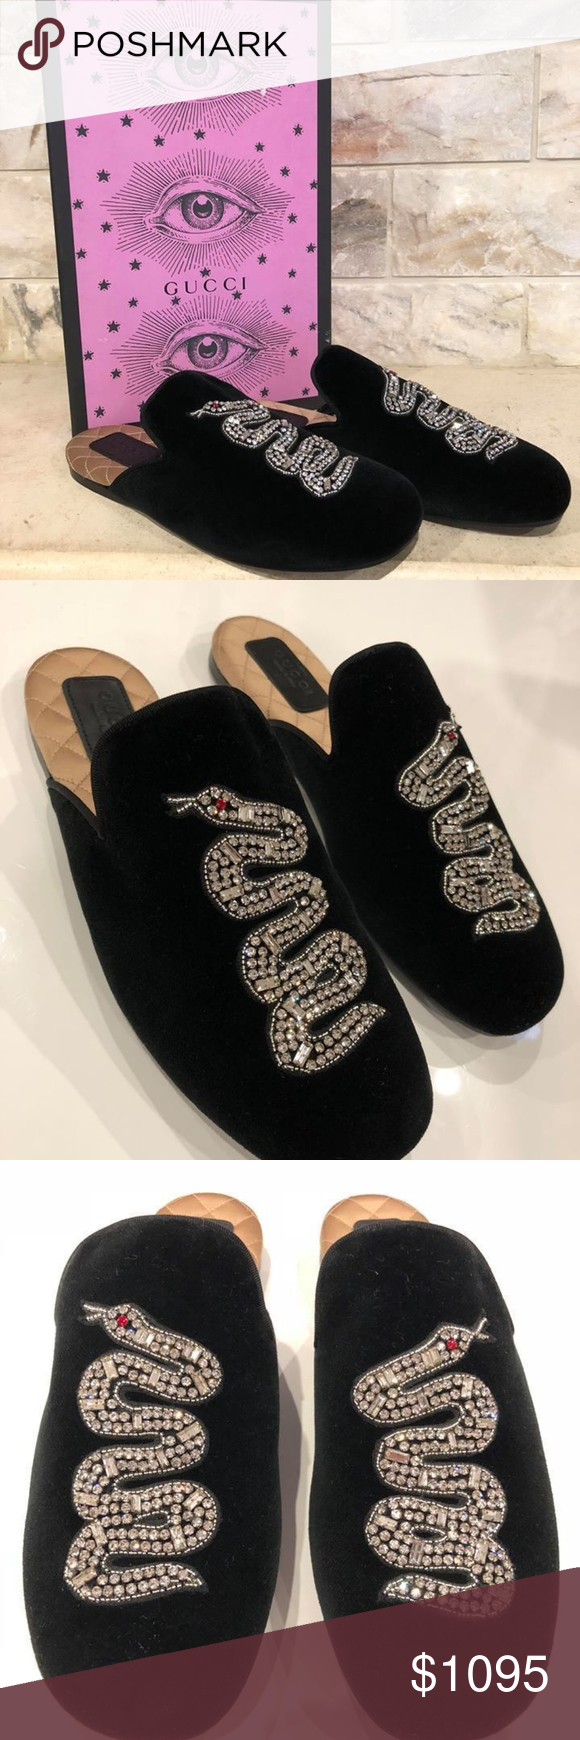 e8774abbc4c Gucci Lawrence Princetown Crystal Snake Slide Gucci Lawrence Princetown  Crystal Snake Slide Loafer Mule Slipper Flats